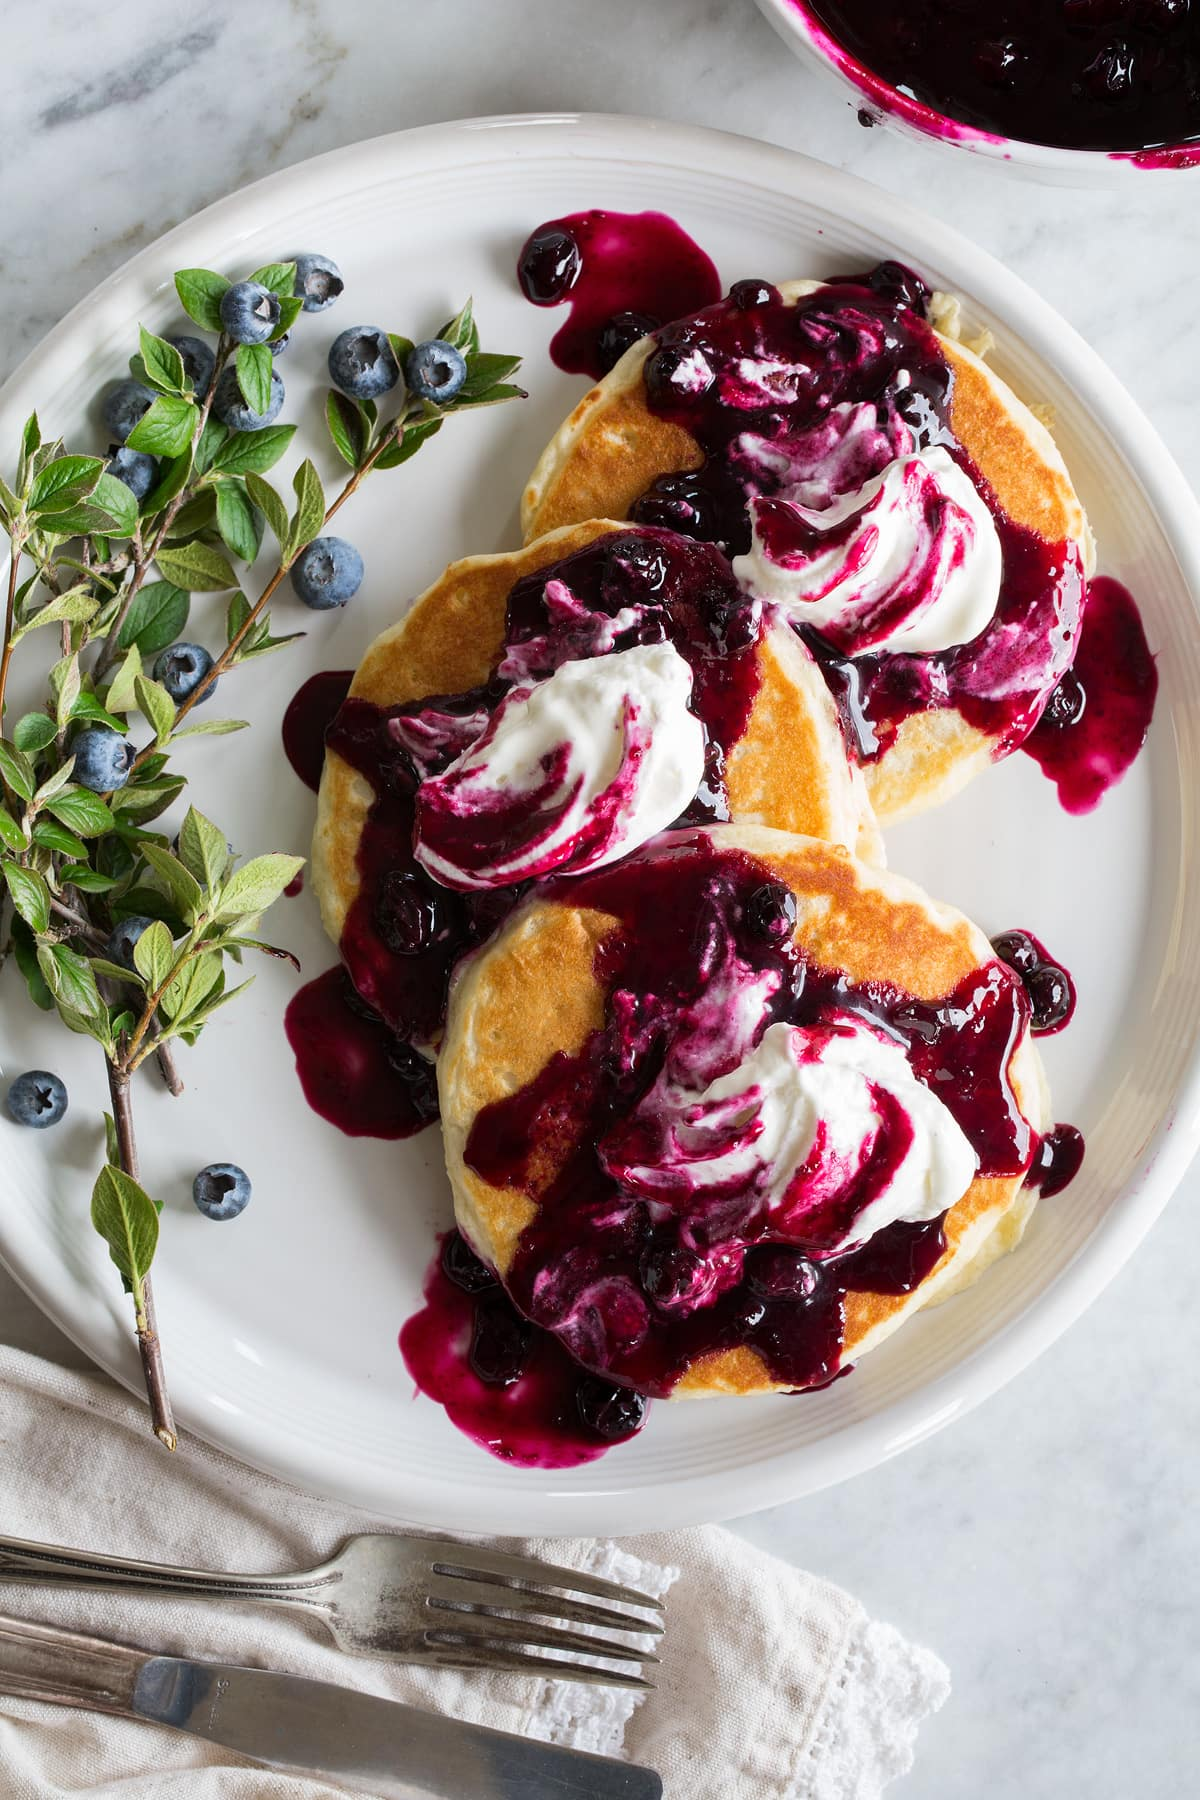 Blueberry syrup shown poured over pancakes with whipped cream on top.